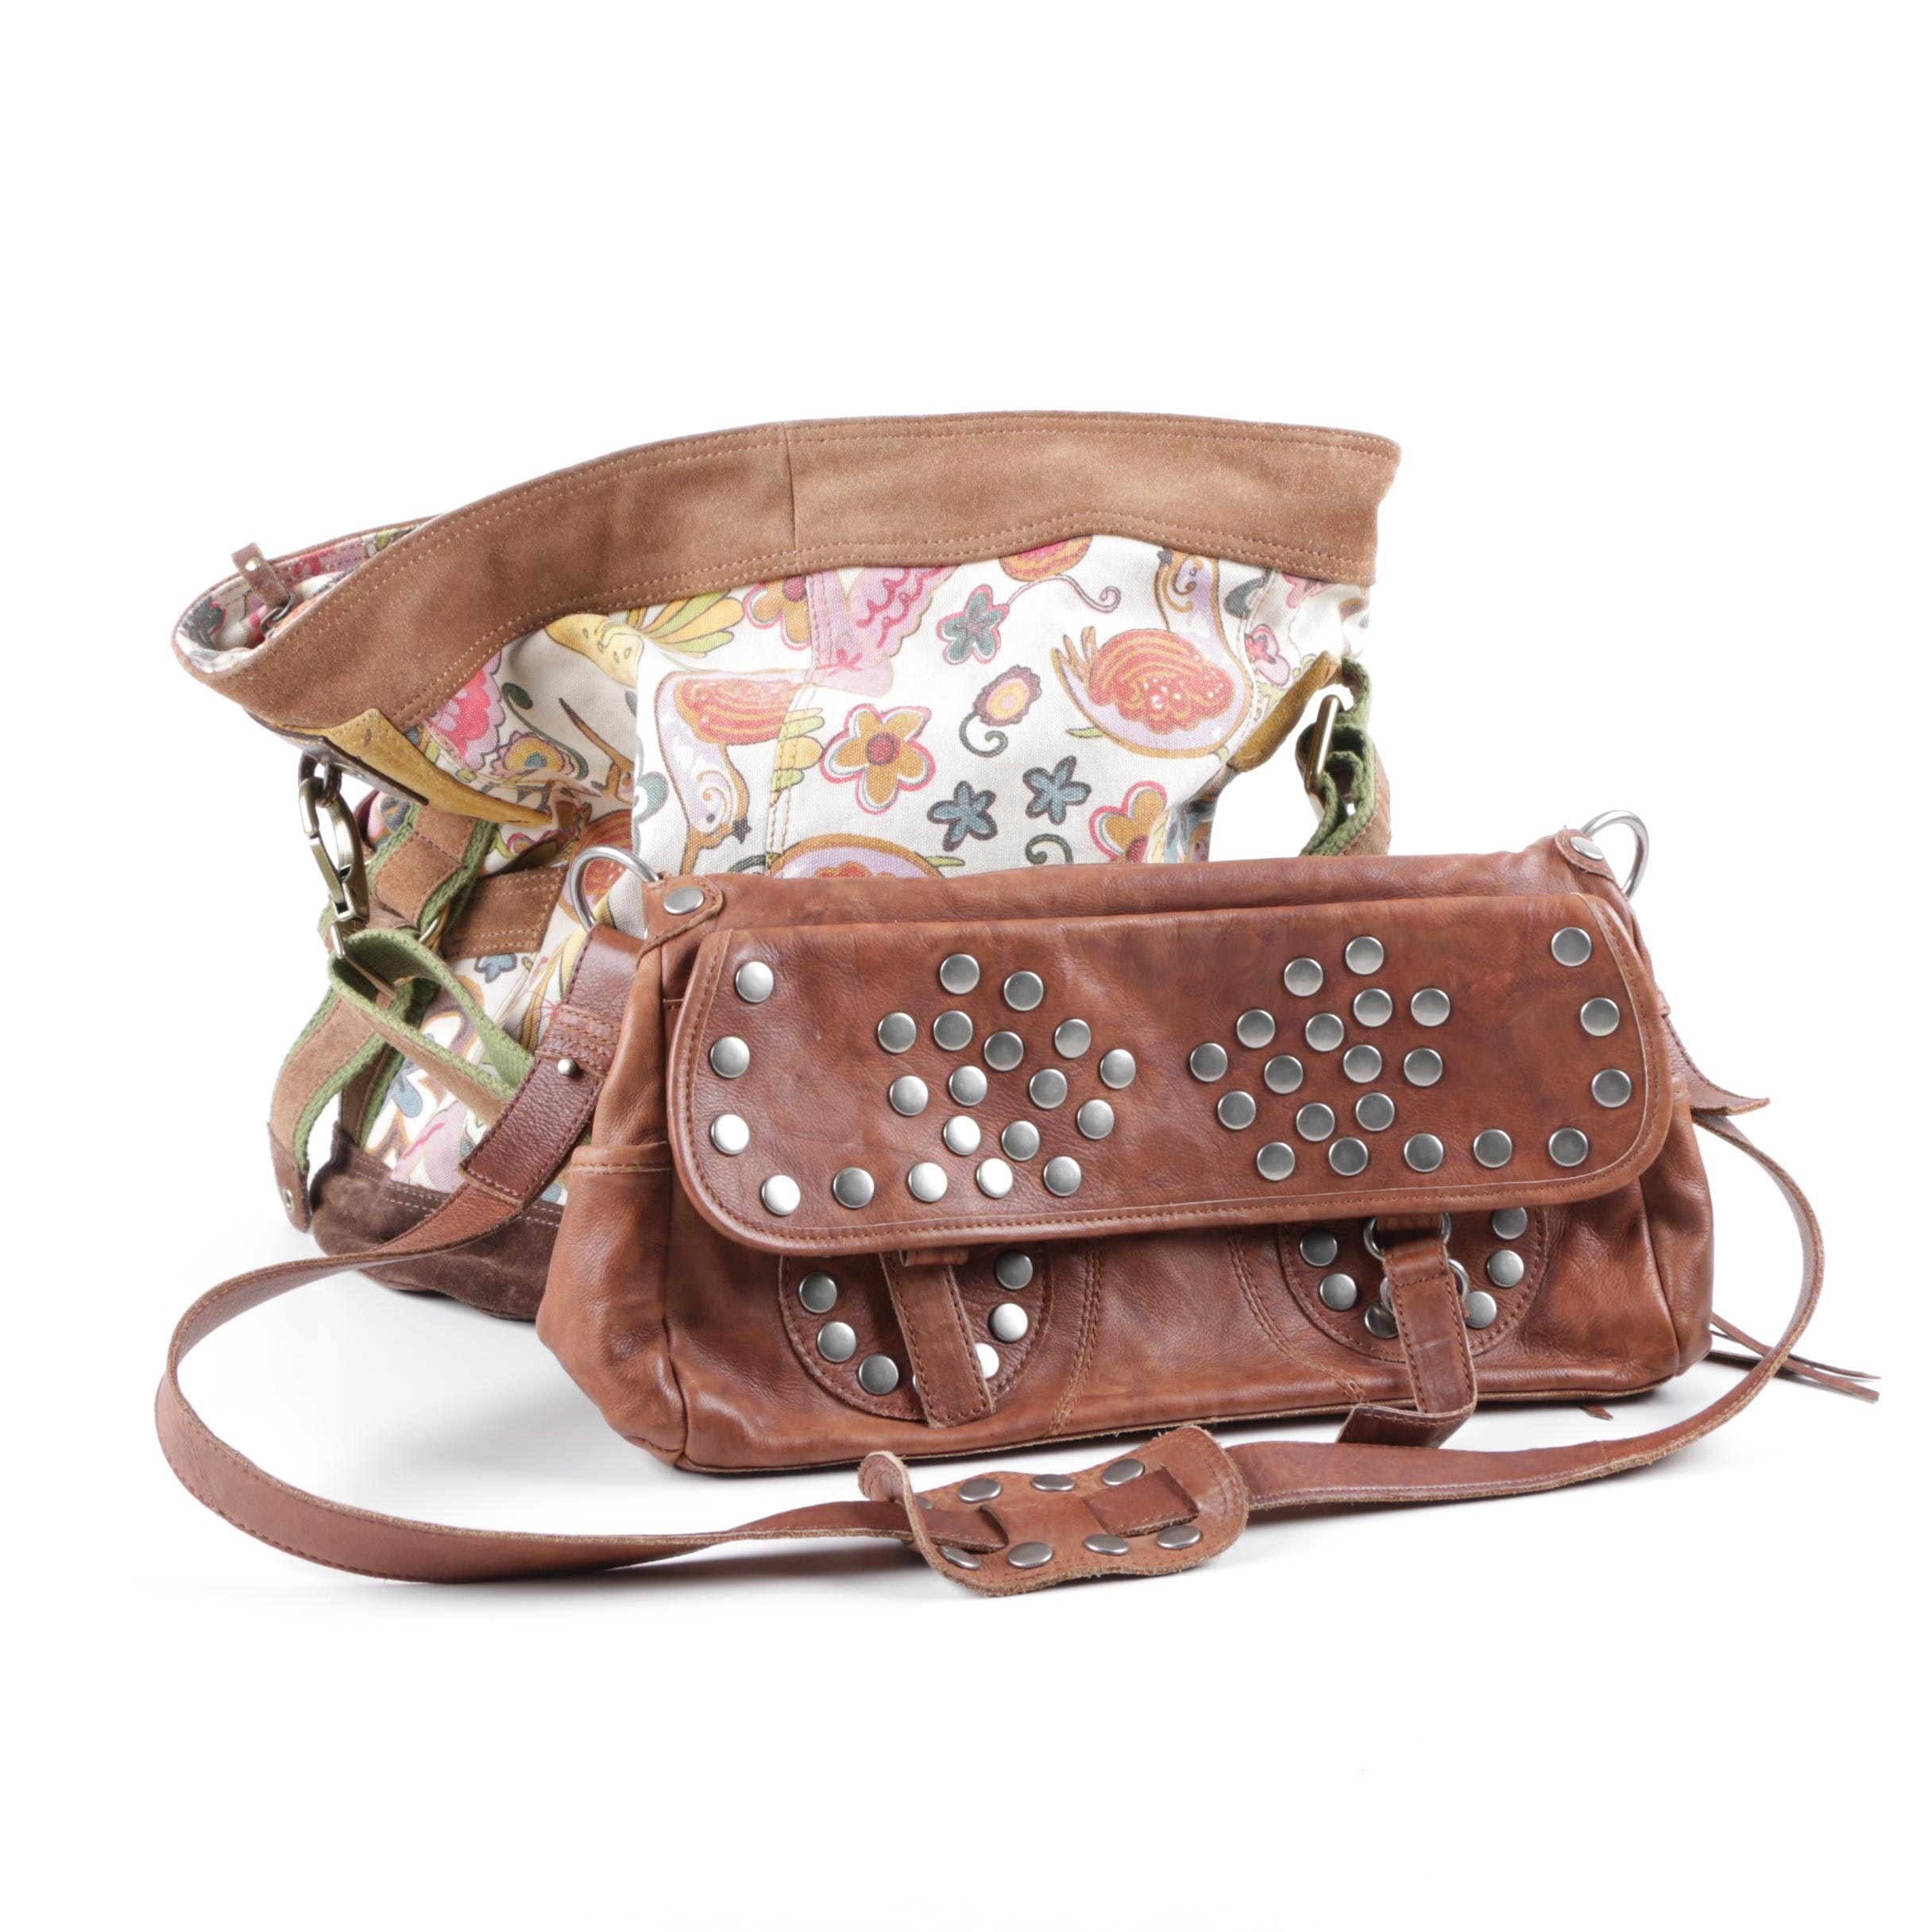 Steve Madden Leather with Lucky Canvas and Leather Handbags